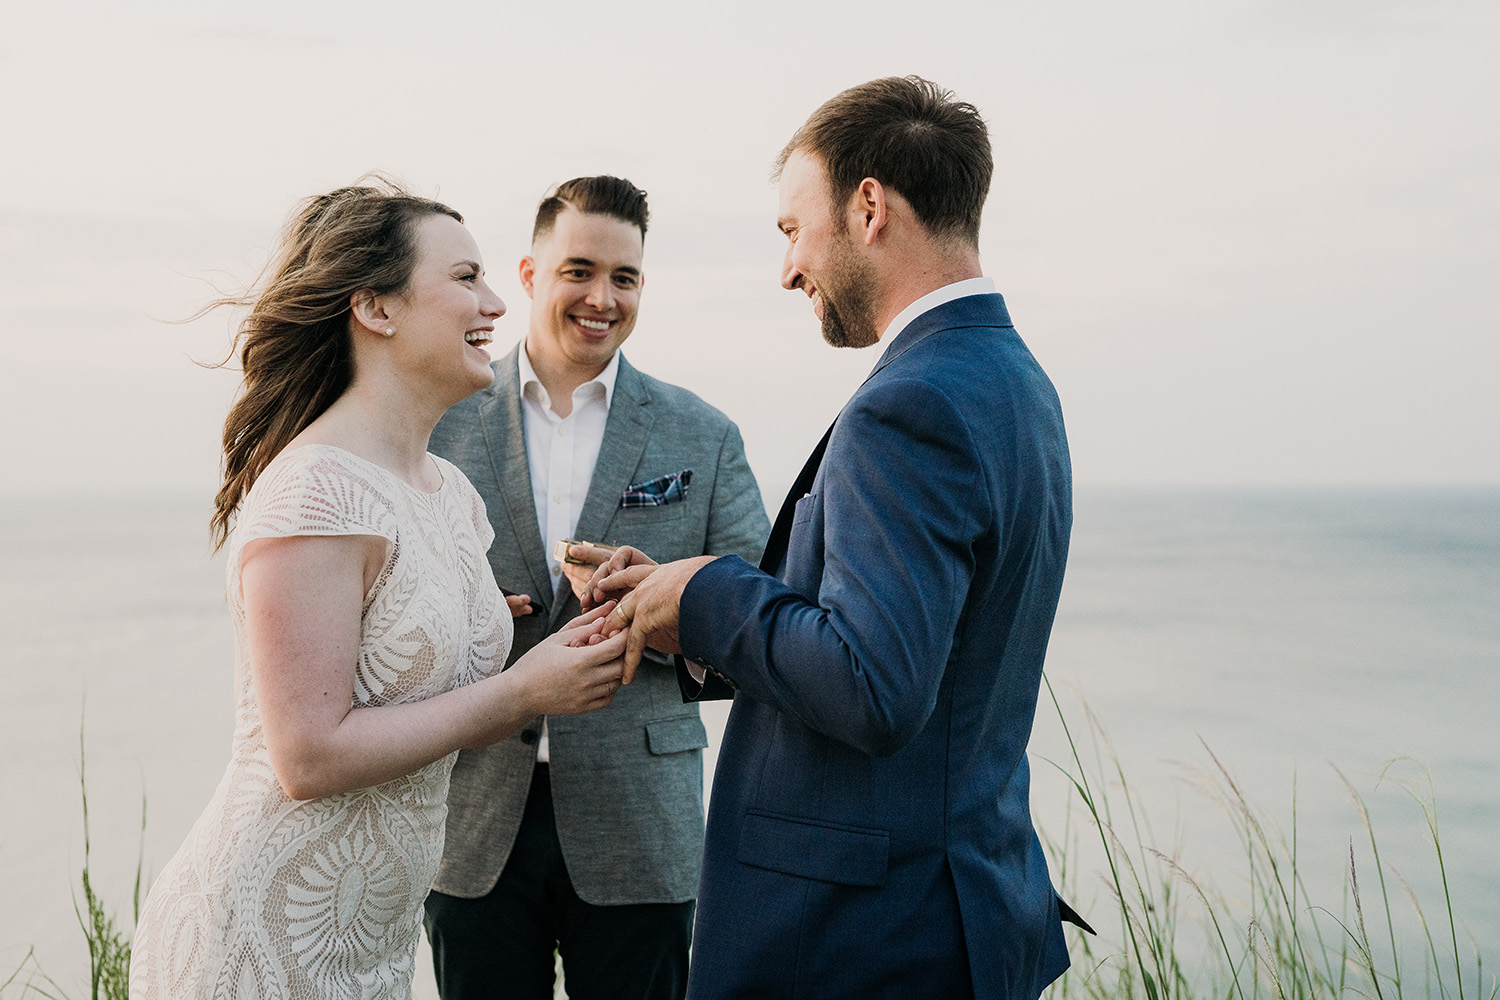 Couple says vows on adventure filled day at Sleeping Bear Dunes with Josh Hartman